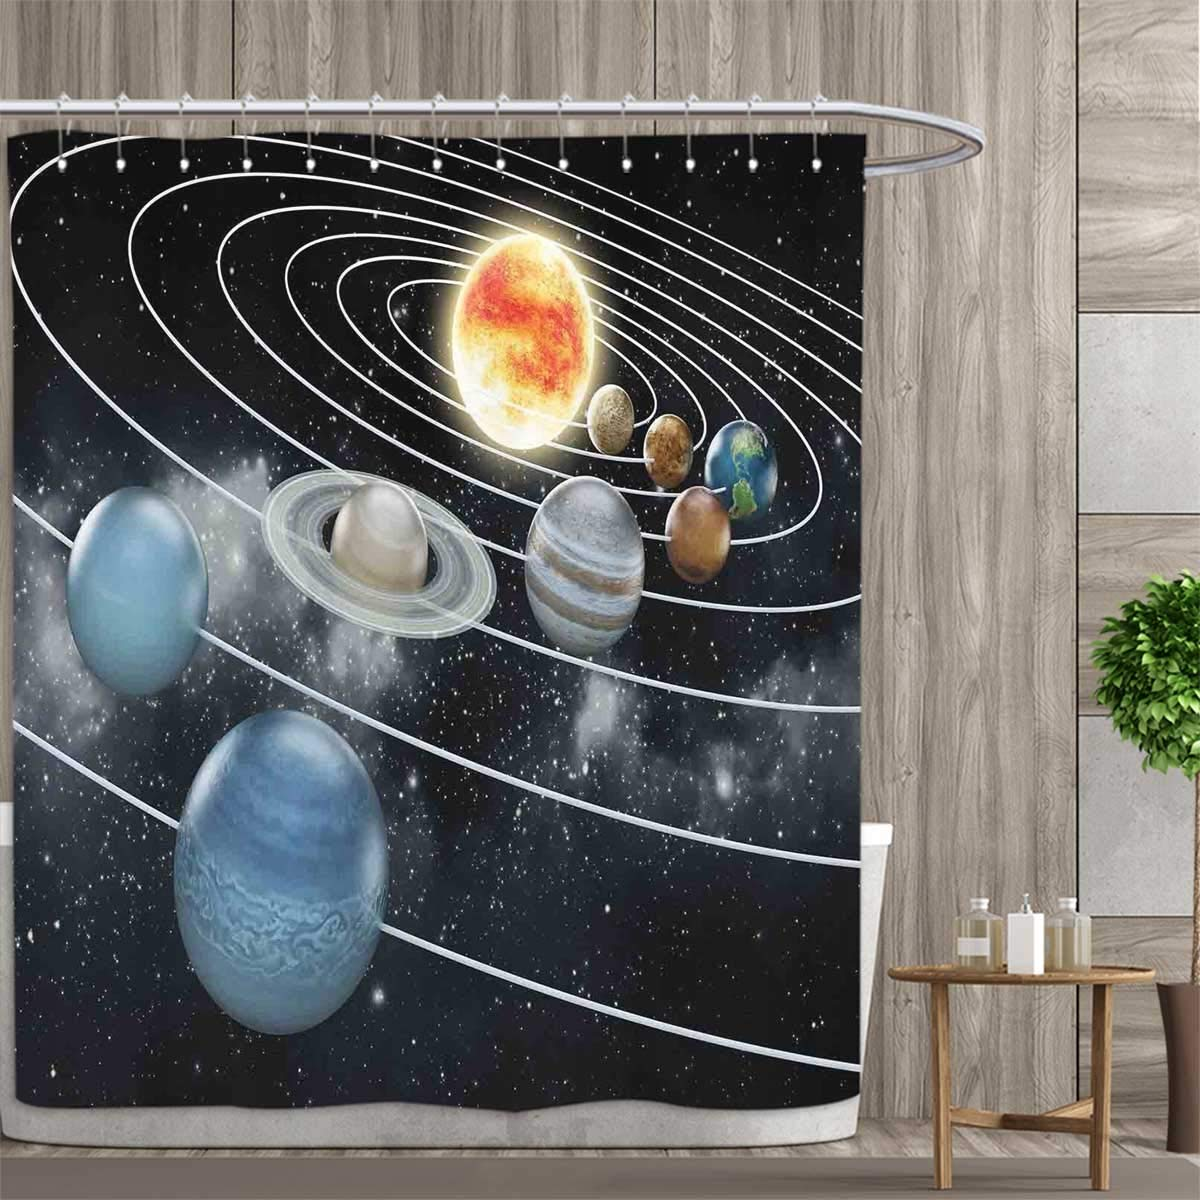 Anniutwo Galaxy Shower Curtains Fabric Solar System All Eight Planets and The Sun Pluto Jupiter Mars Venus Science Fiction Bathroom Decor Set with Hooks 66''x72'' Black Grey